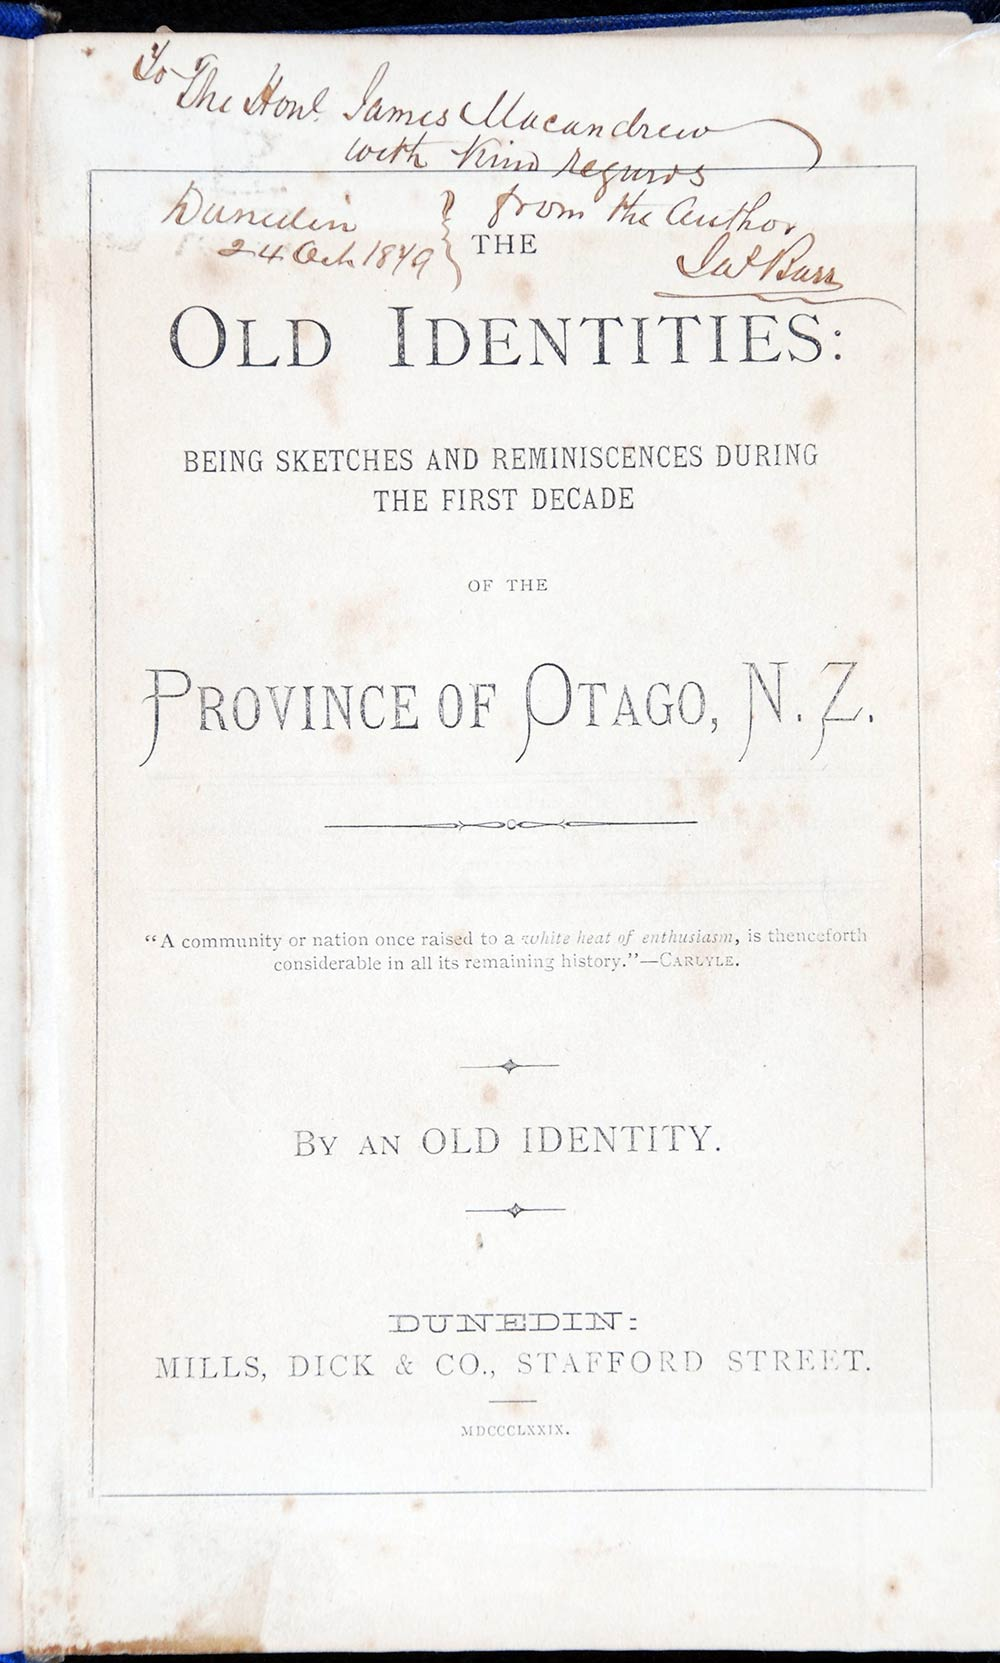 James Barr. <em>The old identities: being sketches and reminiscences during the first decade of the province of Otago, N.Z.</em> Dunedin: Mills, Dick & Co., 1879.